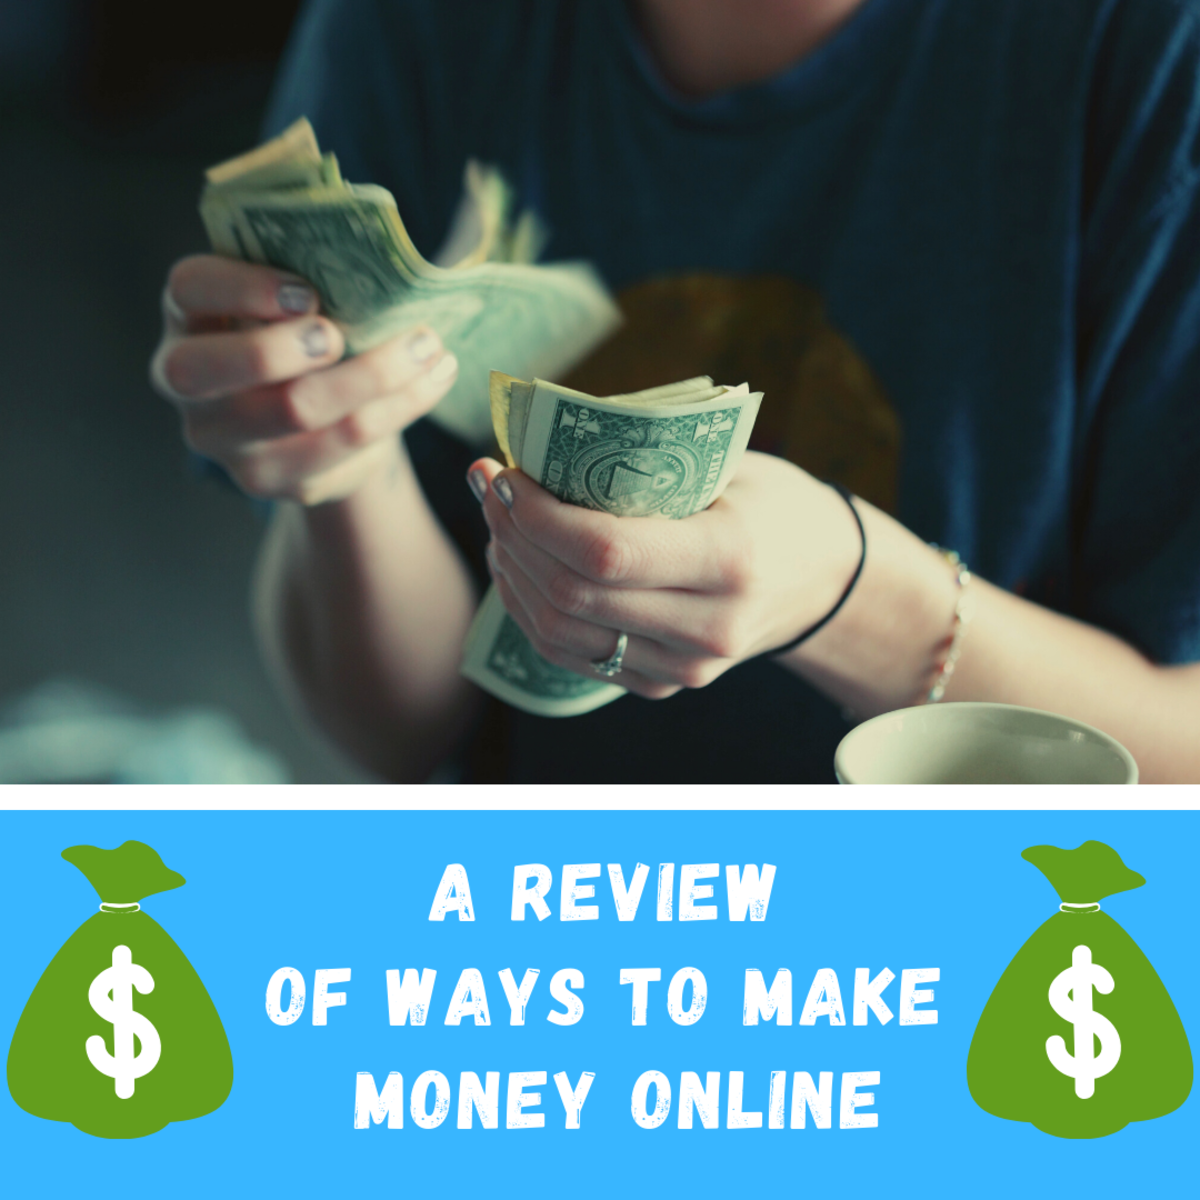 An Honest Review of Ways to Make Money Online